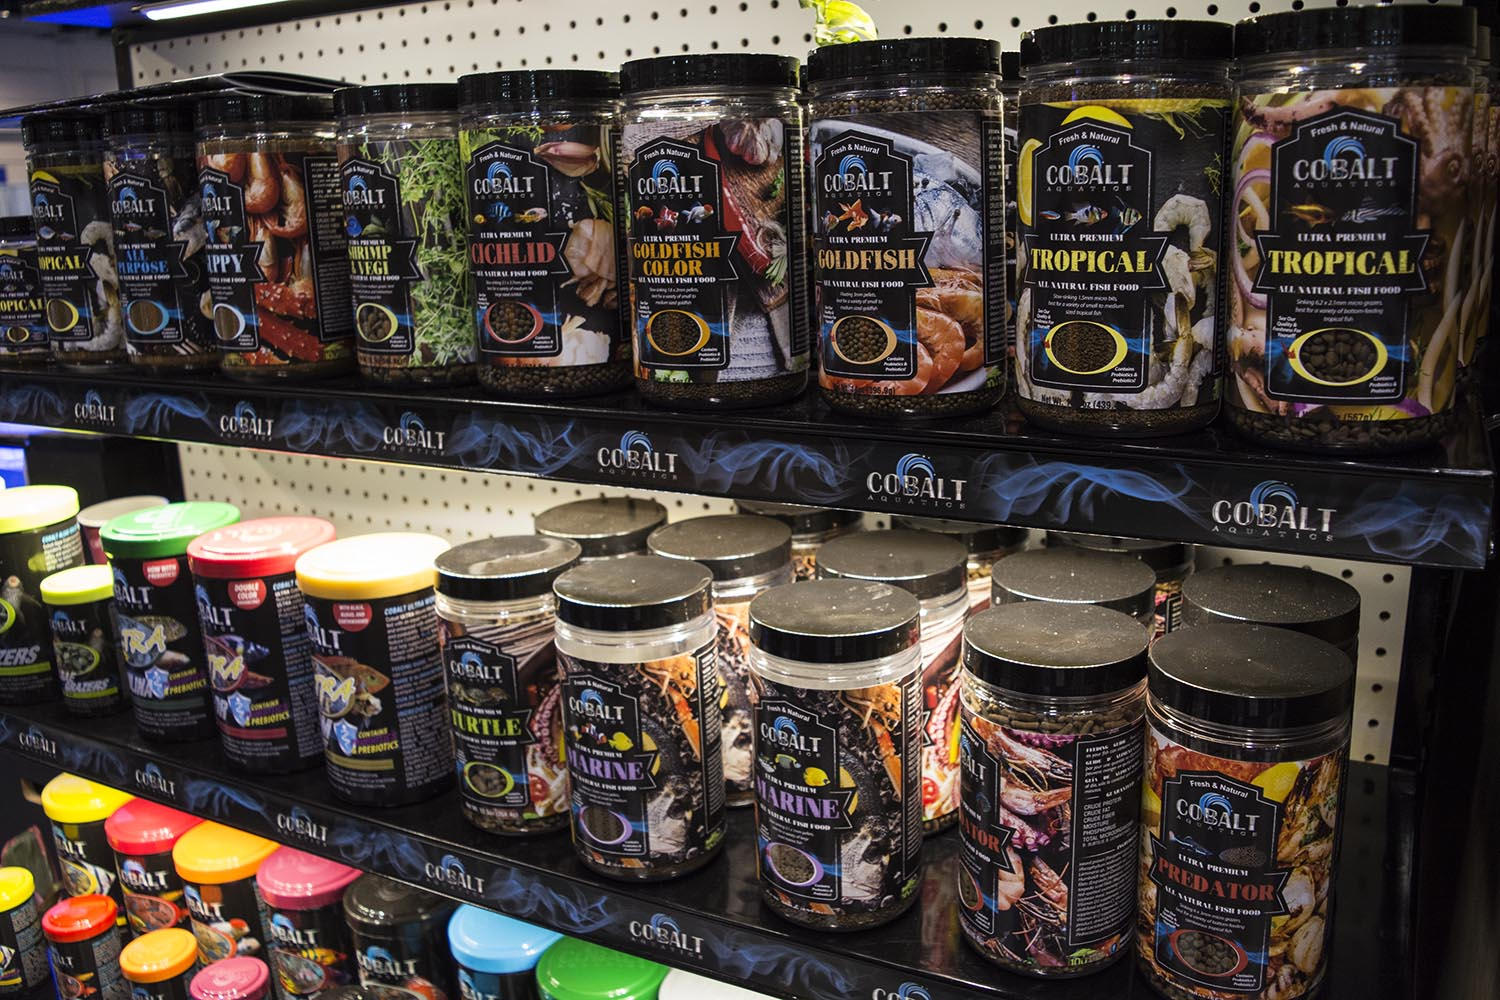 Cobalt Aquatics launched a variety of new products at the show, including their new line of ultra premium fish foods.